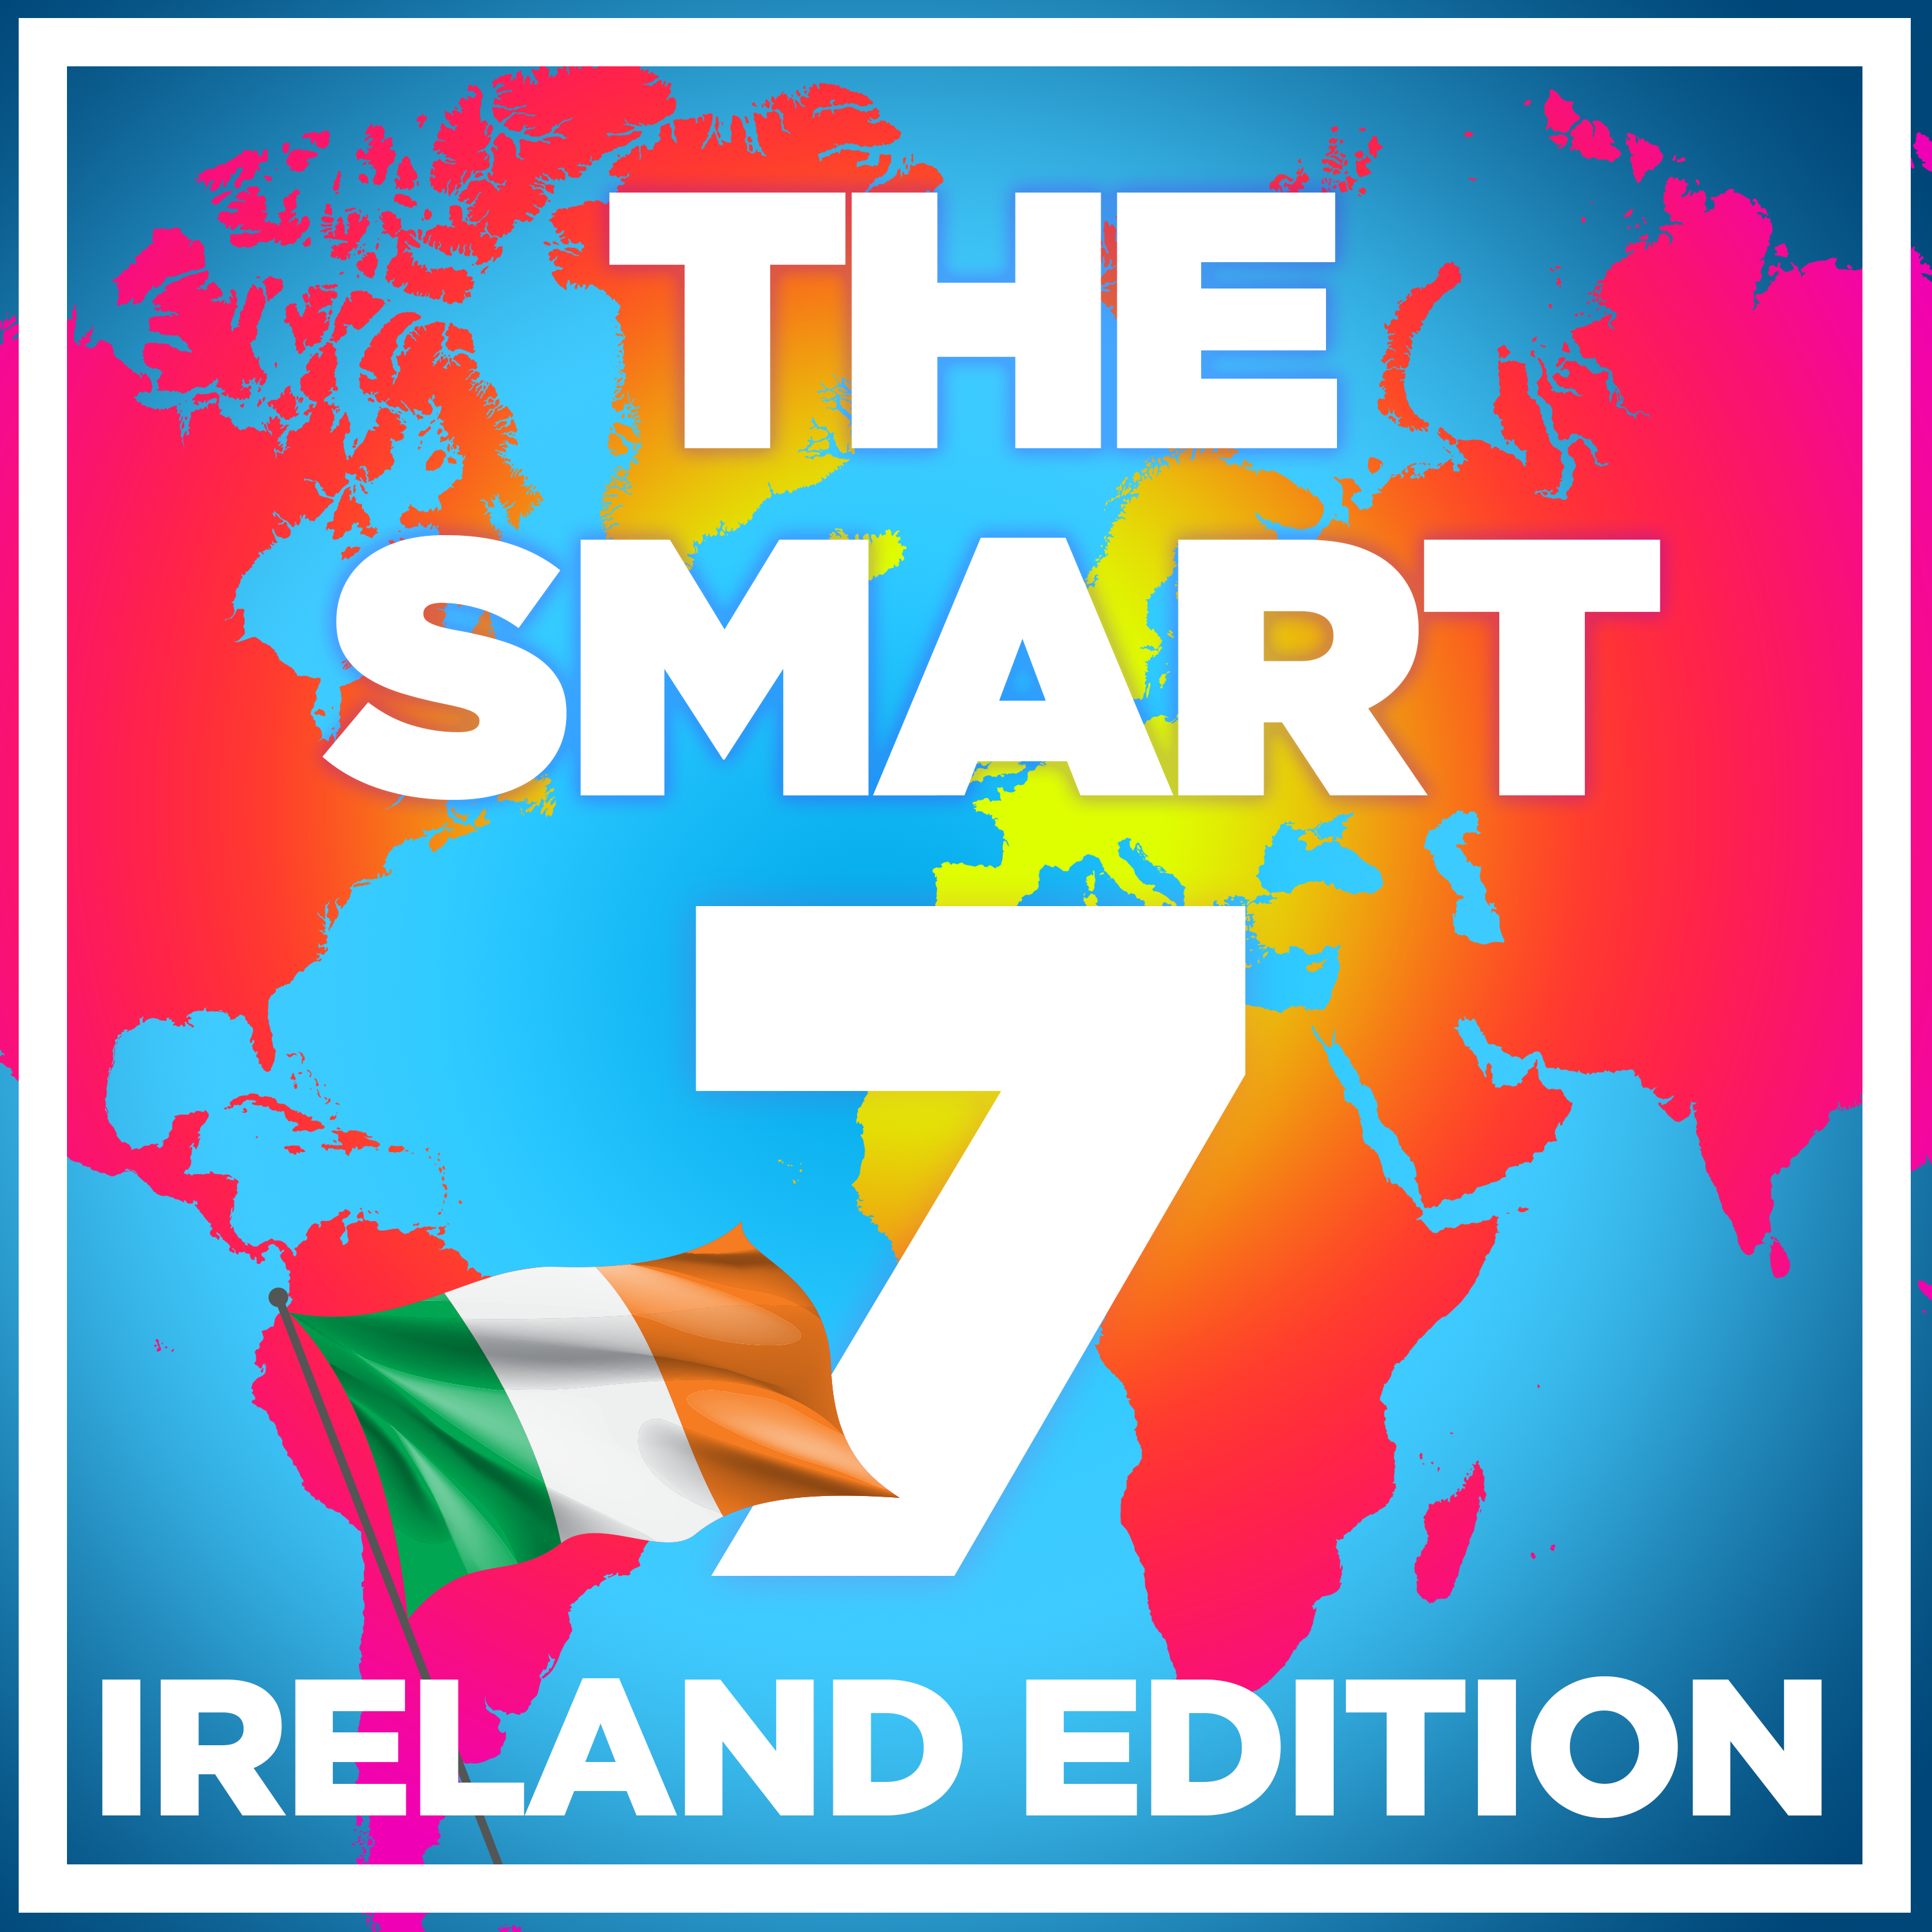 Introducing The Smart 7 Ireland Edition serving up your daily News Espresso with the 7 biggest stories each morning in just 7 minutes.